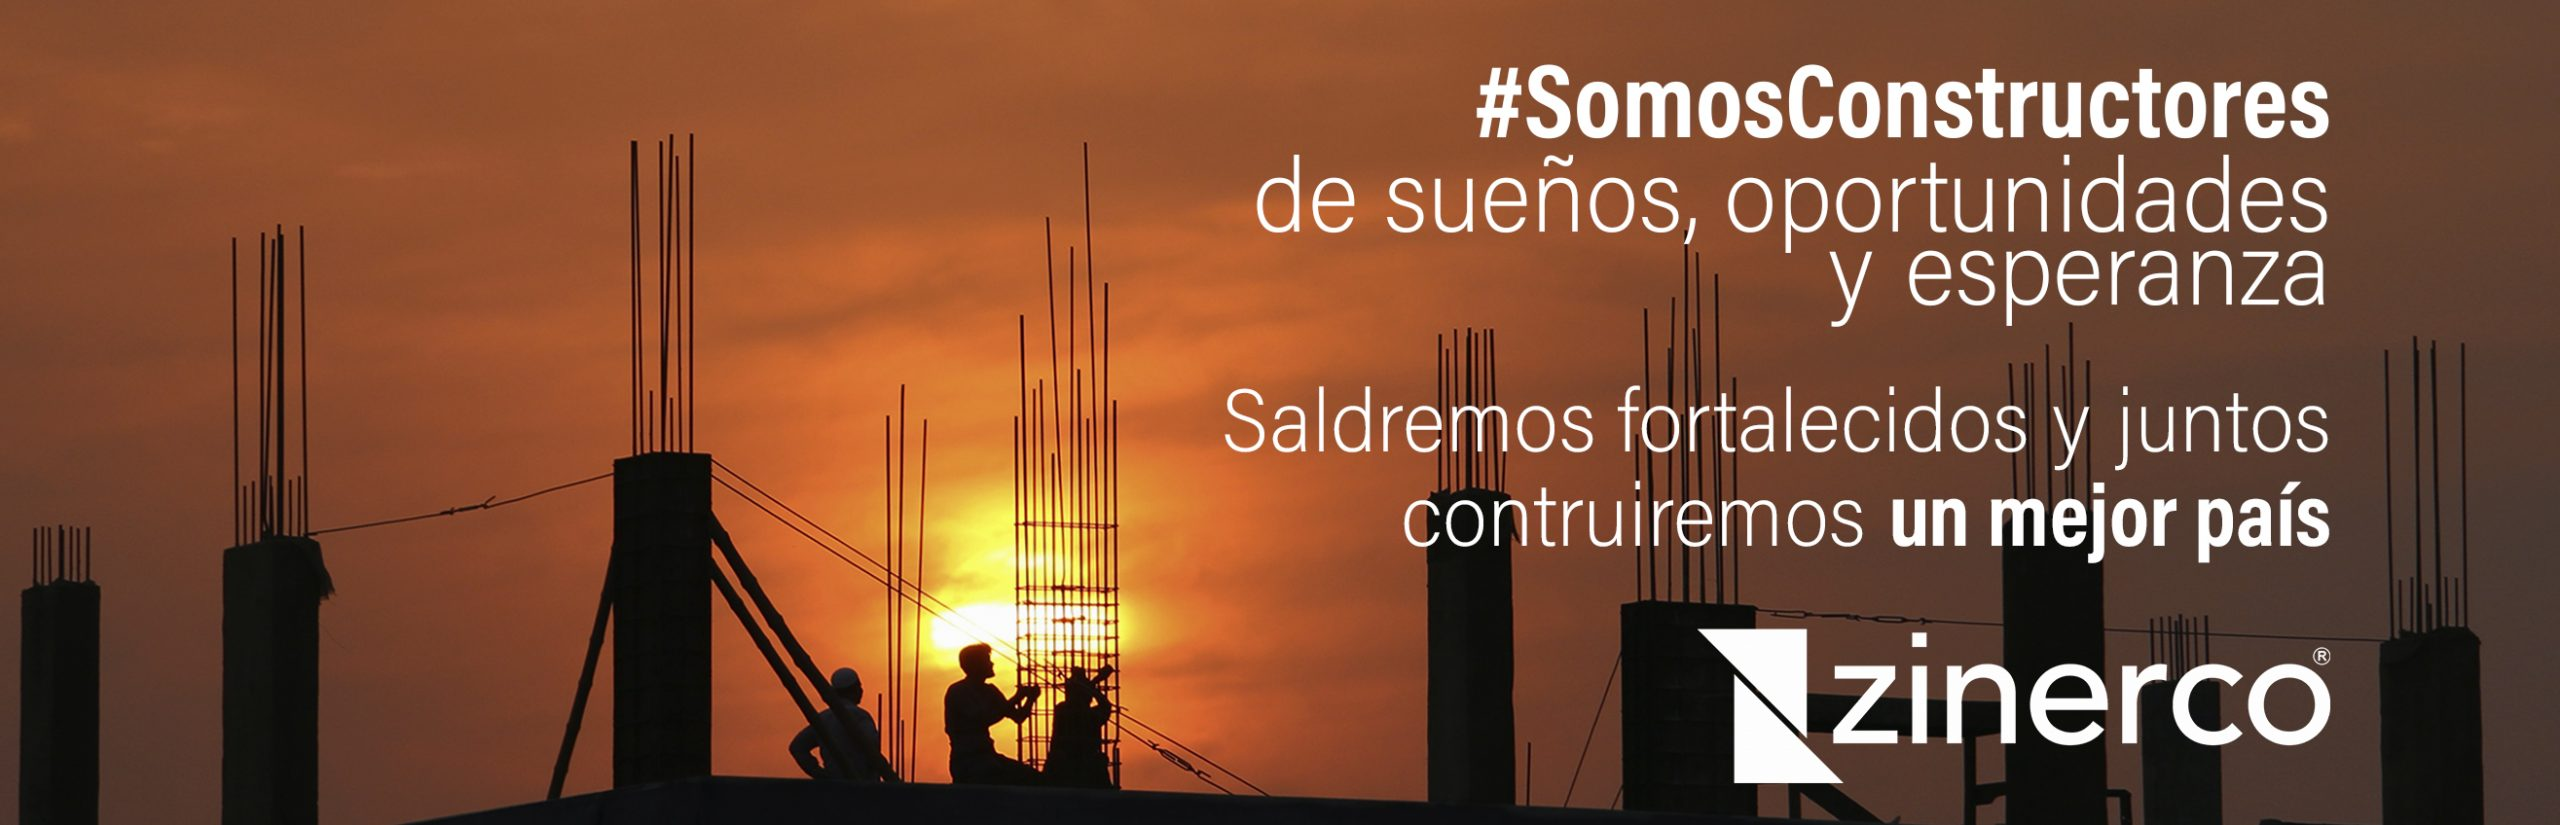 banner-web-somos-constructores-scaled